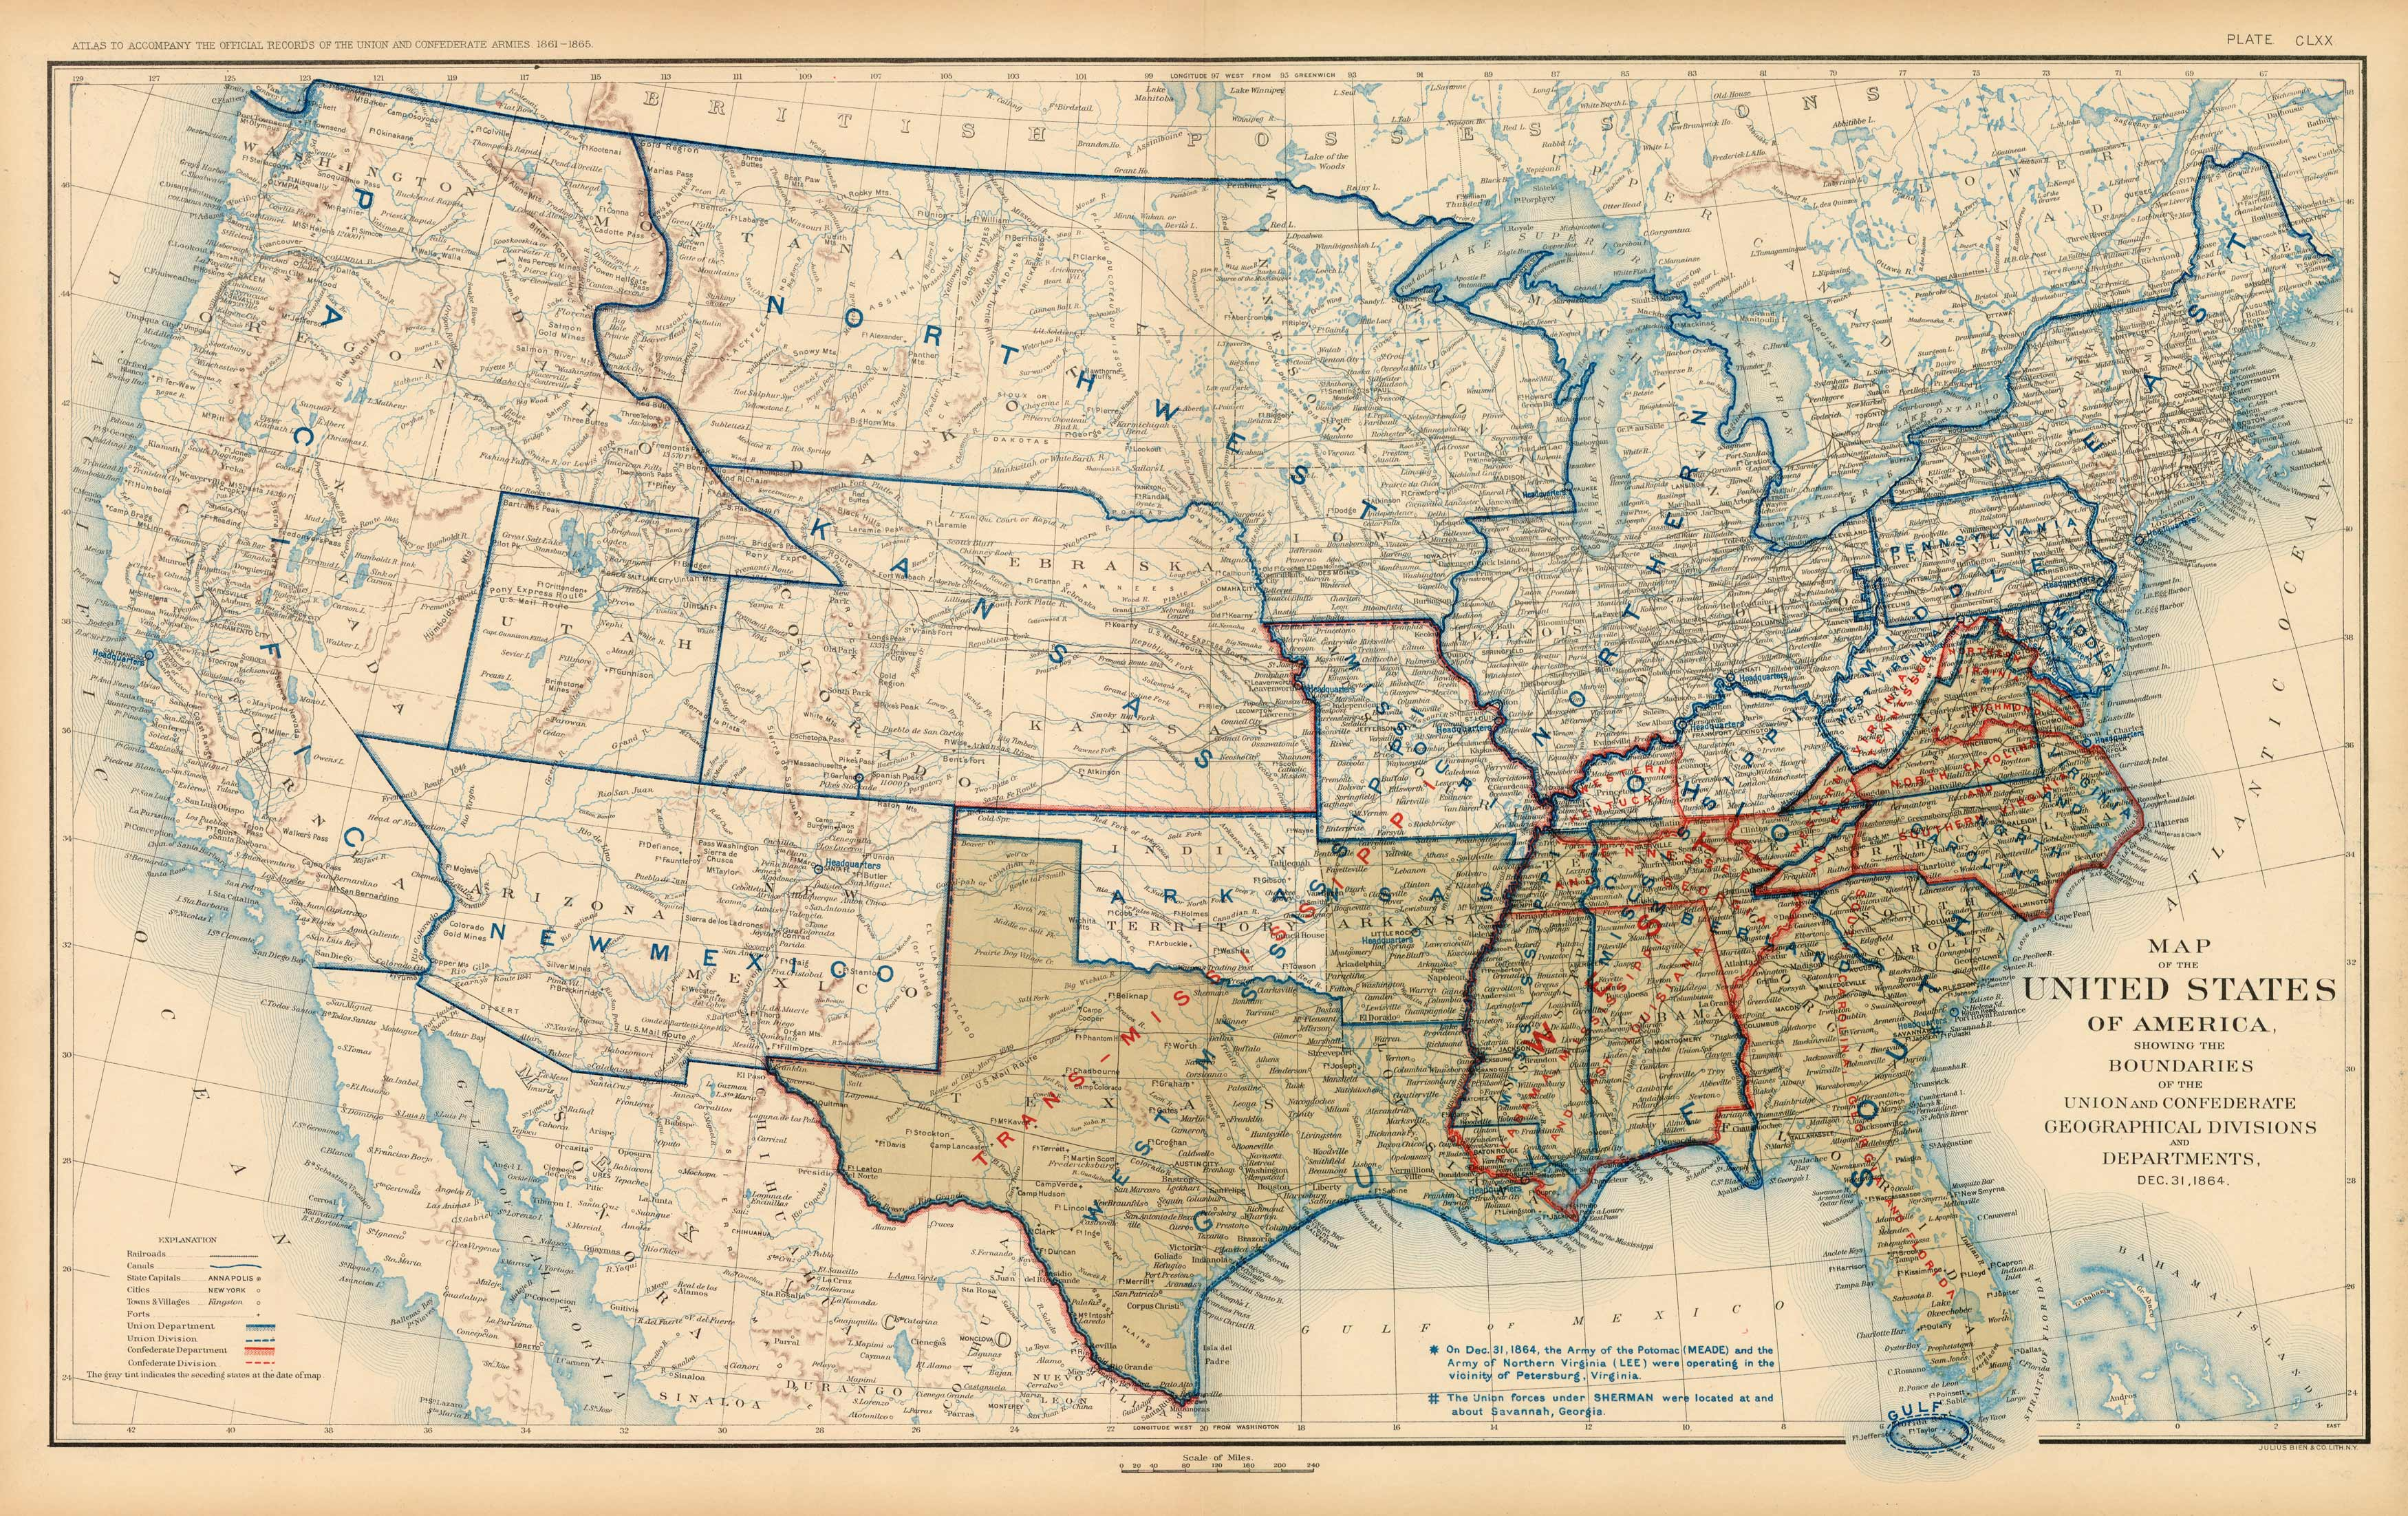 Civil War Atlas; Plate 170; Map of the United States of America Showing the  Boundaries of the Union and Confederate Geographical Divisions and ...